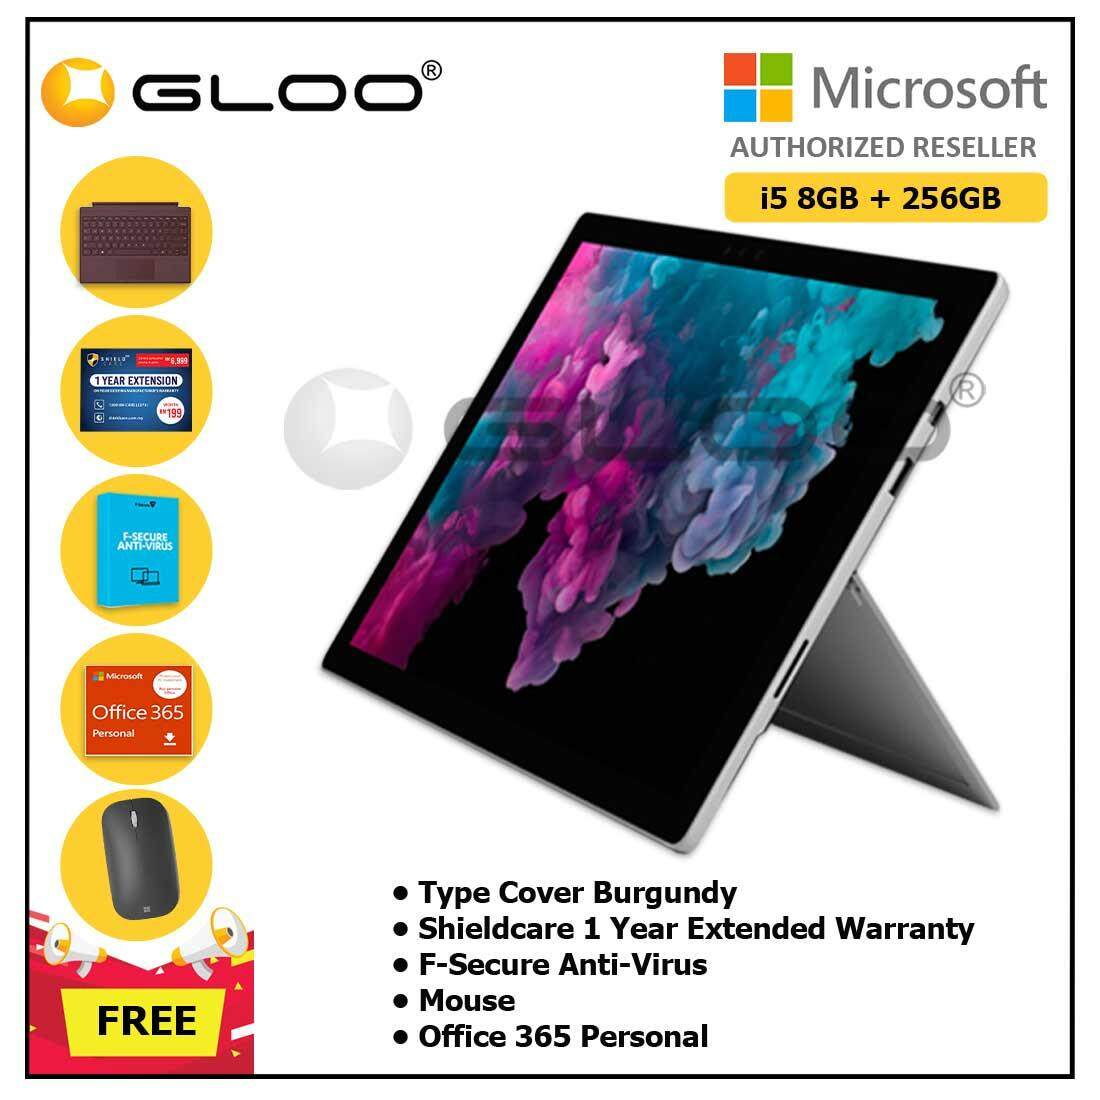 Microsoft Surface Pro 6 Core i5/8GB RAM - 256GB + Type Cover Burgundy + Office 365 Personal (ESD) + Shieldcare 1 Year Extended Warranty + F-Secure EndPoint Protection + Mouse